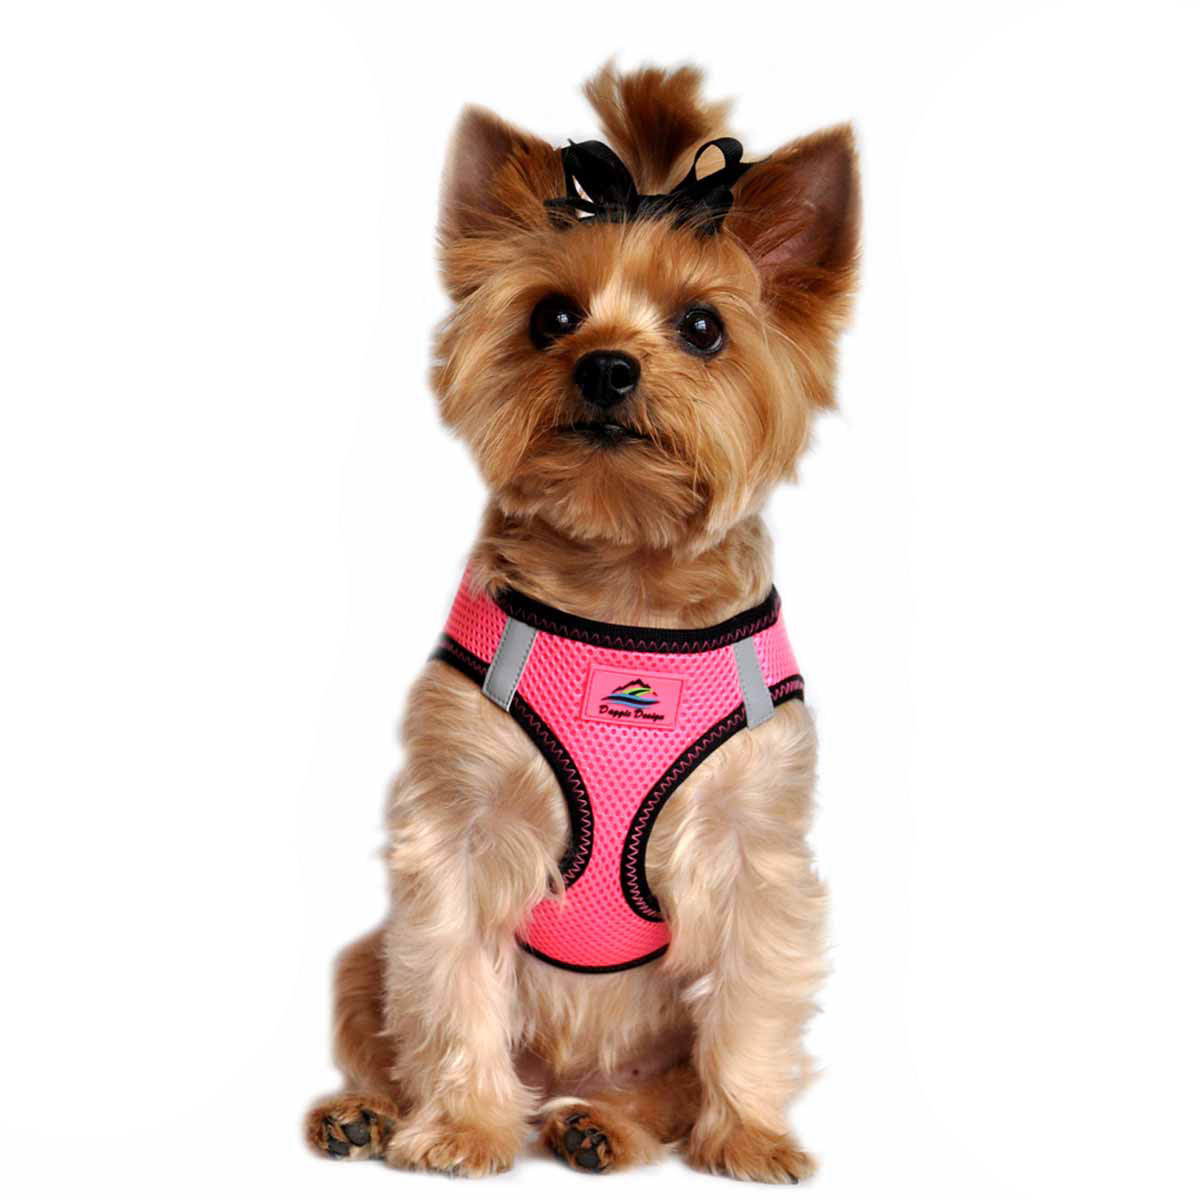 Pink Pet Harness Data Circuit Diagram Lm380 Power Amplifier Tradeoficcom American River Top Stitch Dog By Dogg Baxterboo Rh Com Dogs